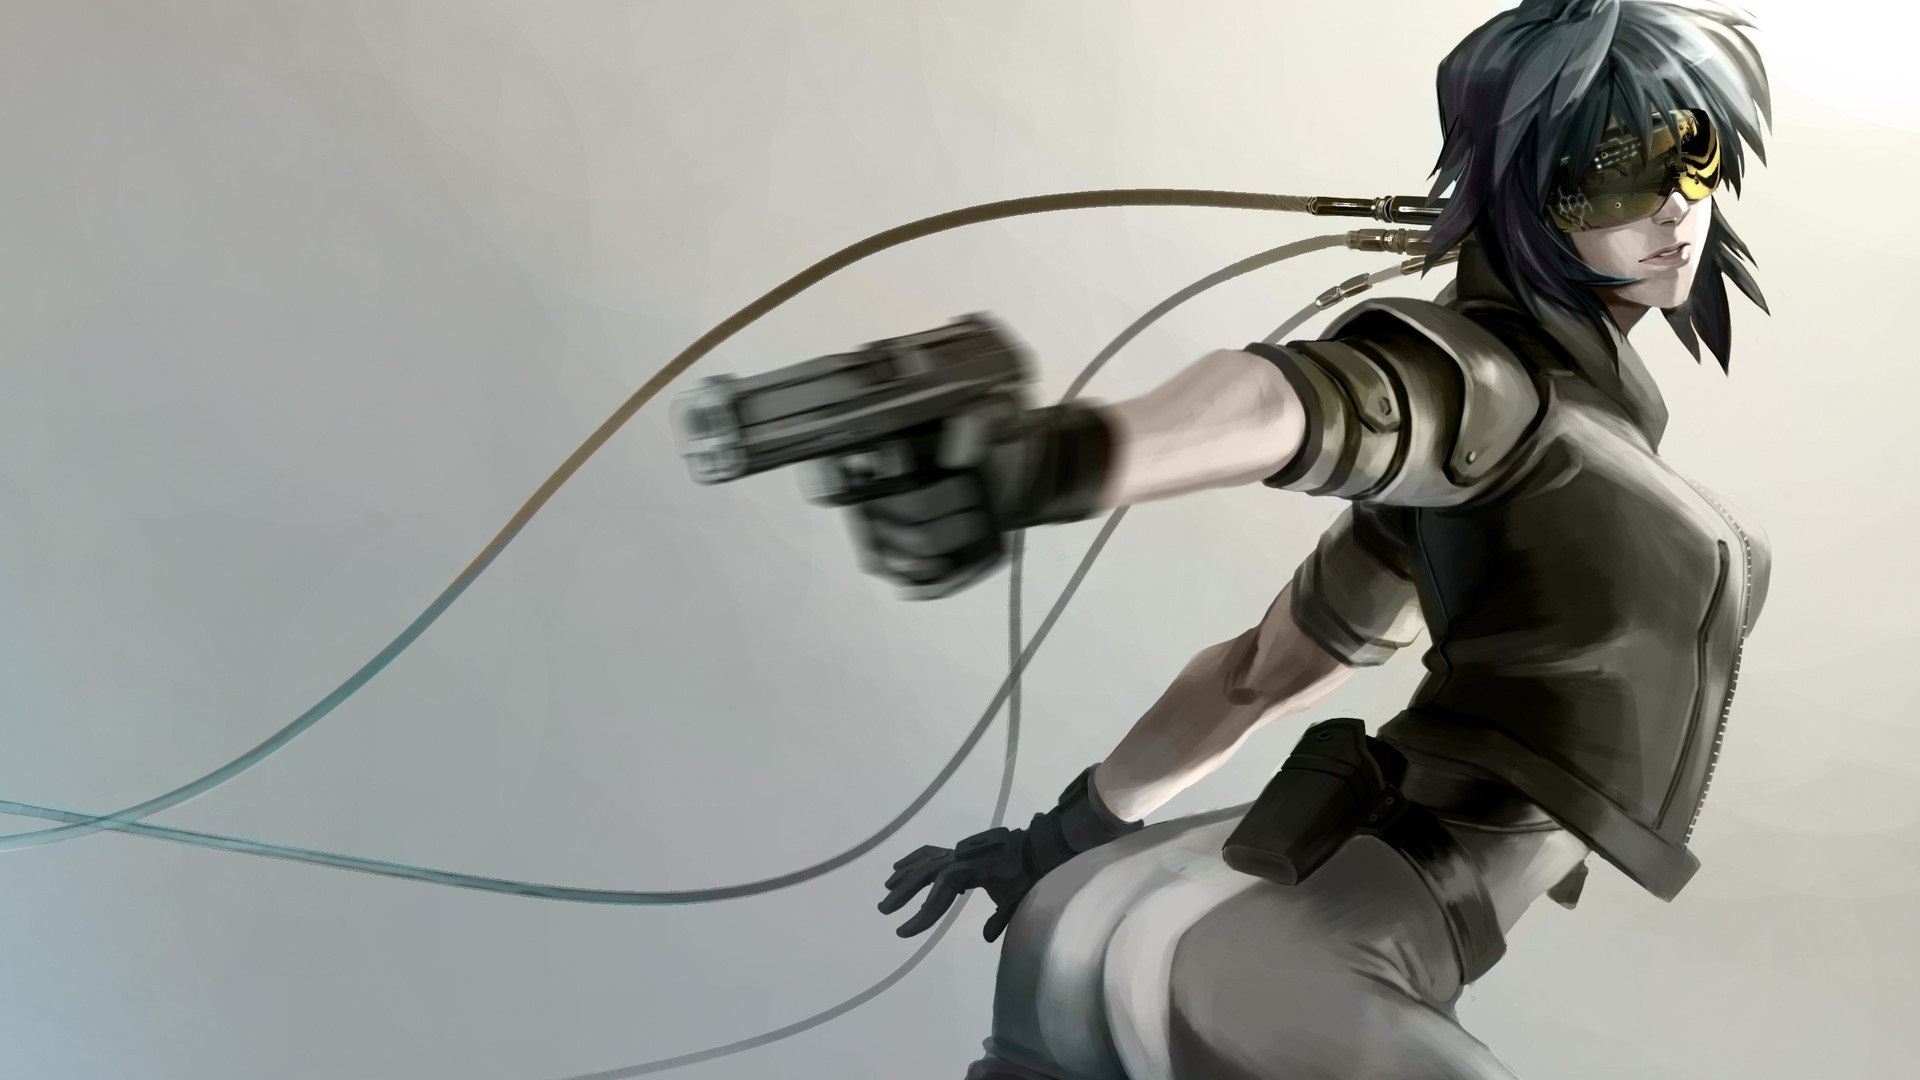 ghost in the shell computer wallpapers desktop backgrounds 1920x1080 id 401851. Black Bedroom Furniture Sets. Home Design Ideas